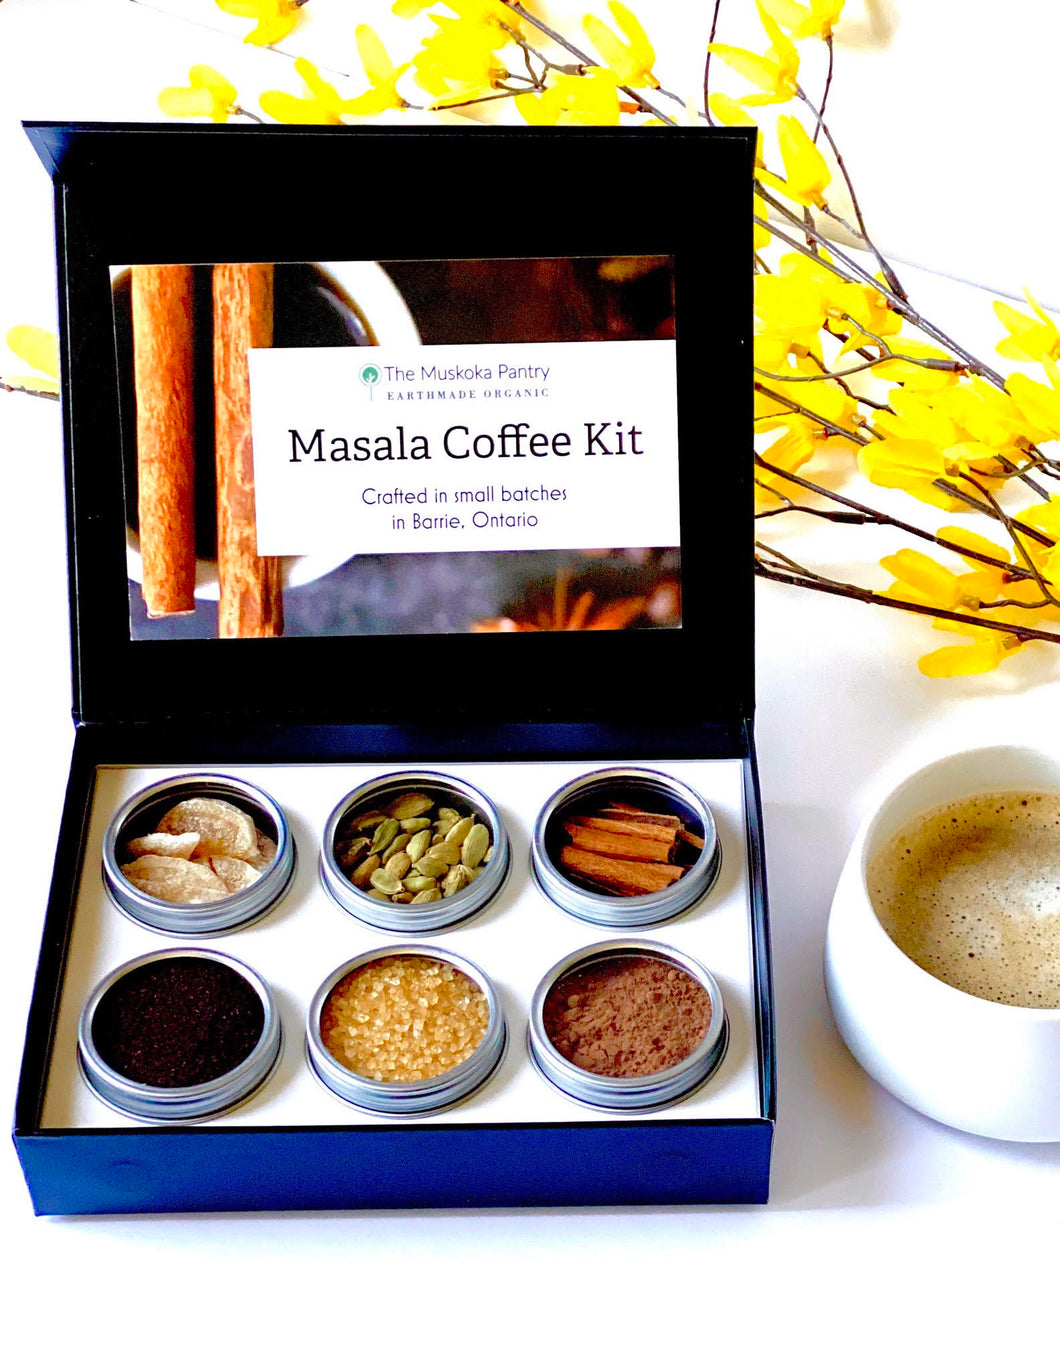 Masala Coffee Kit